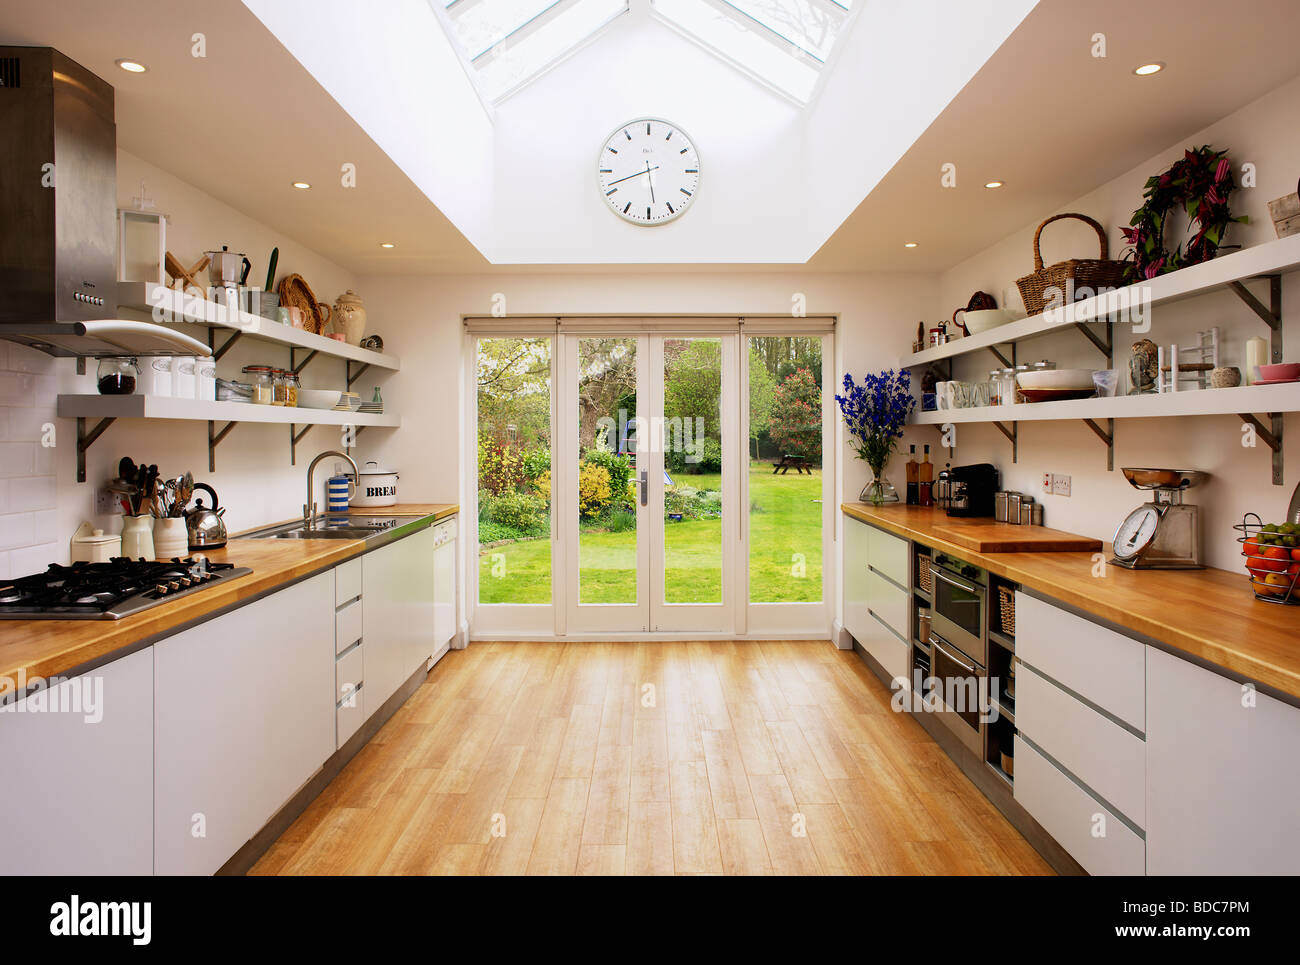 Wooden flooring and glass patio doors in modern kitchen extension